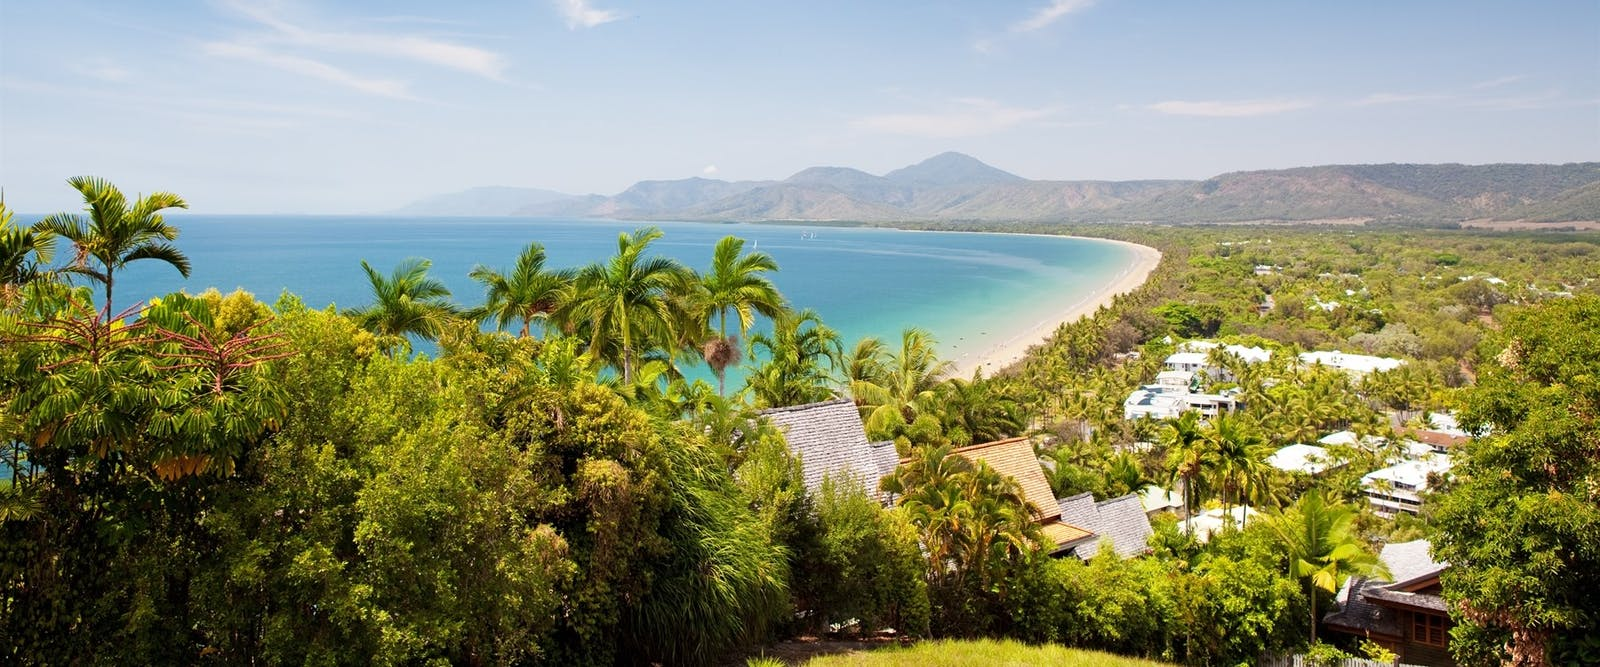 ayers rock to port douglas